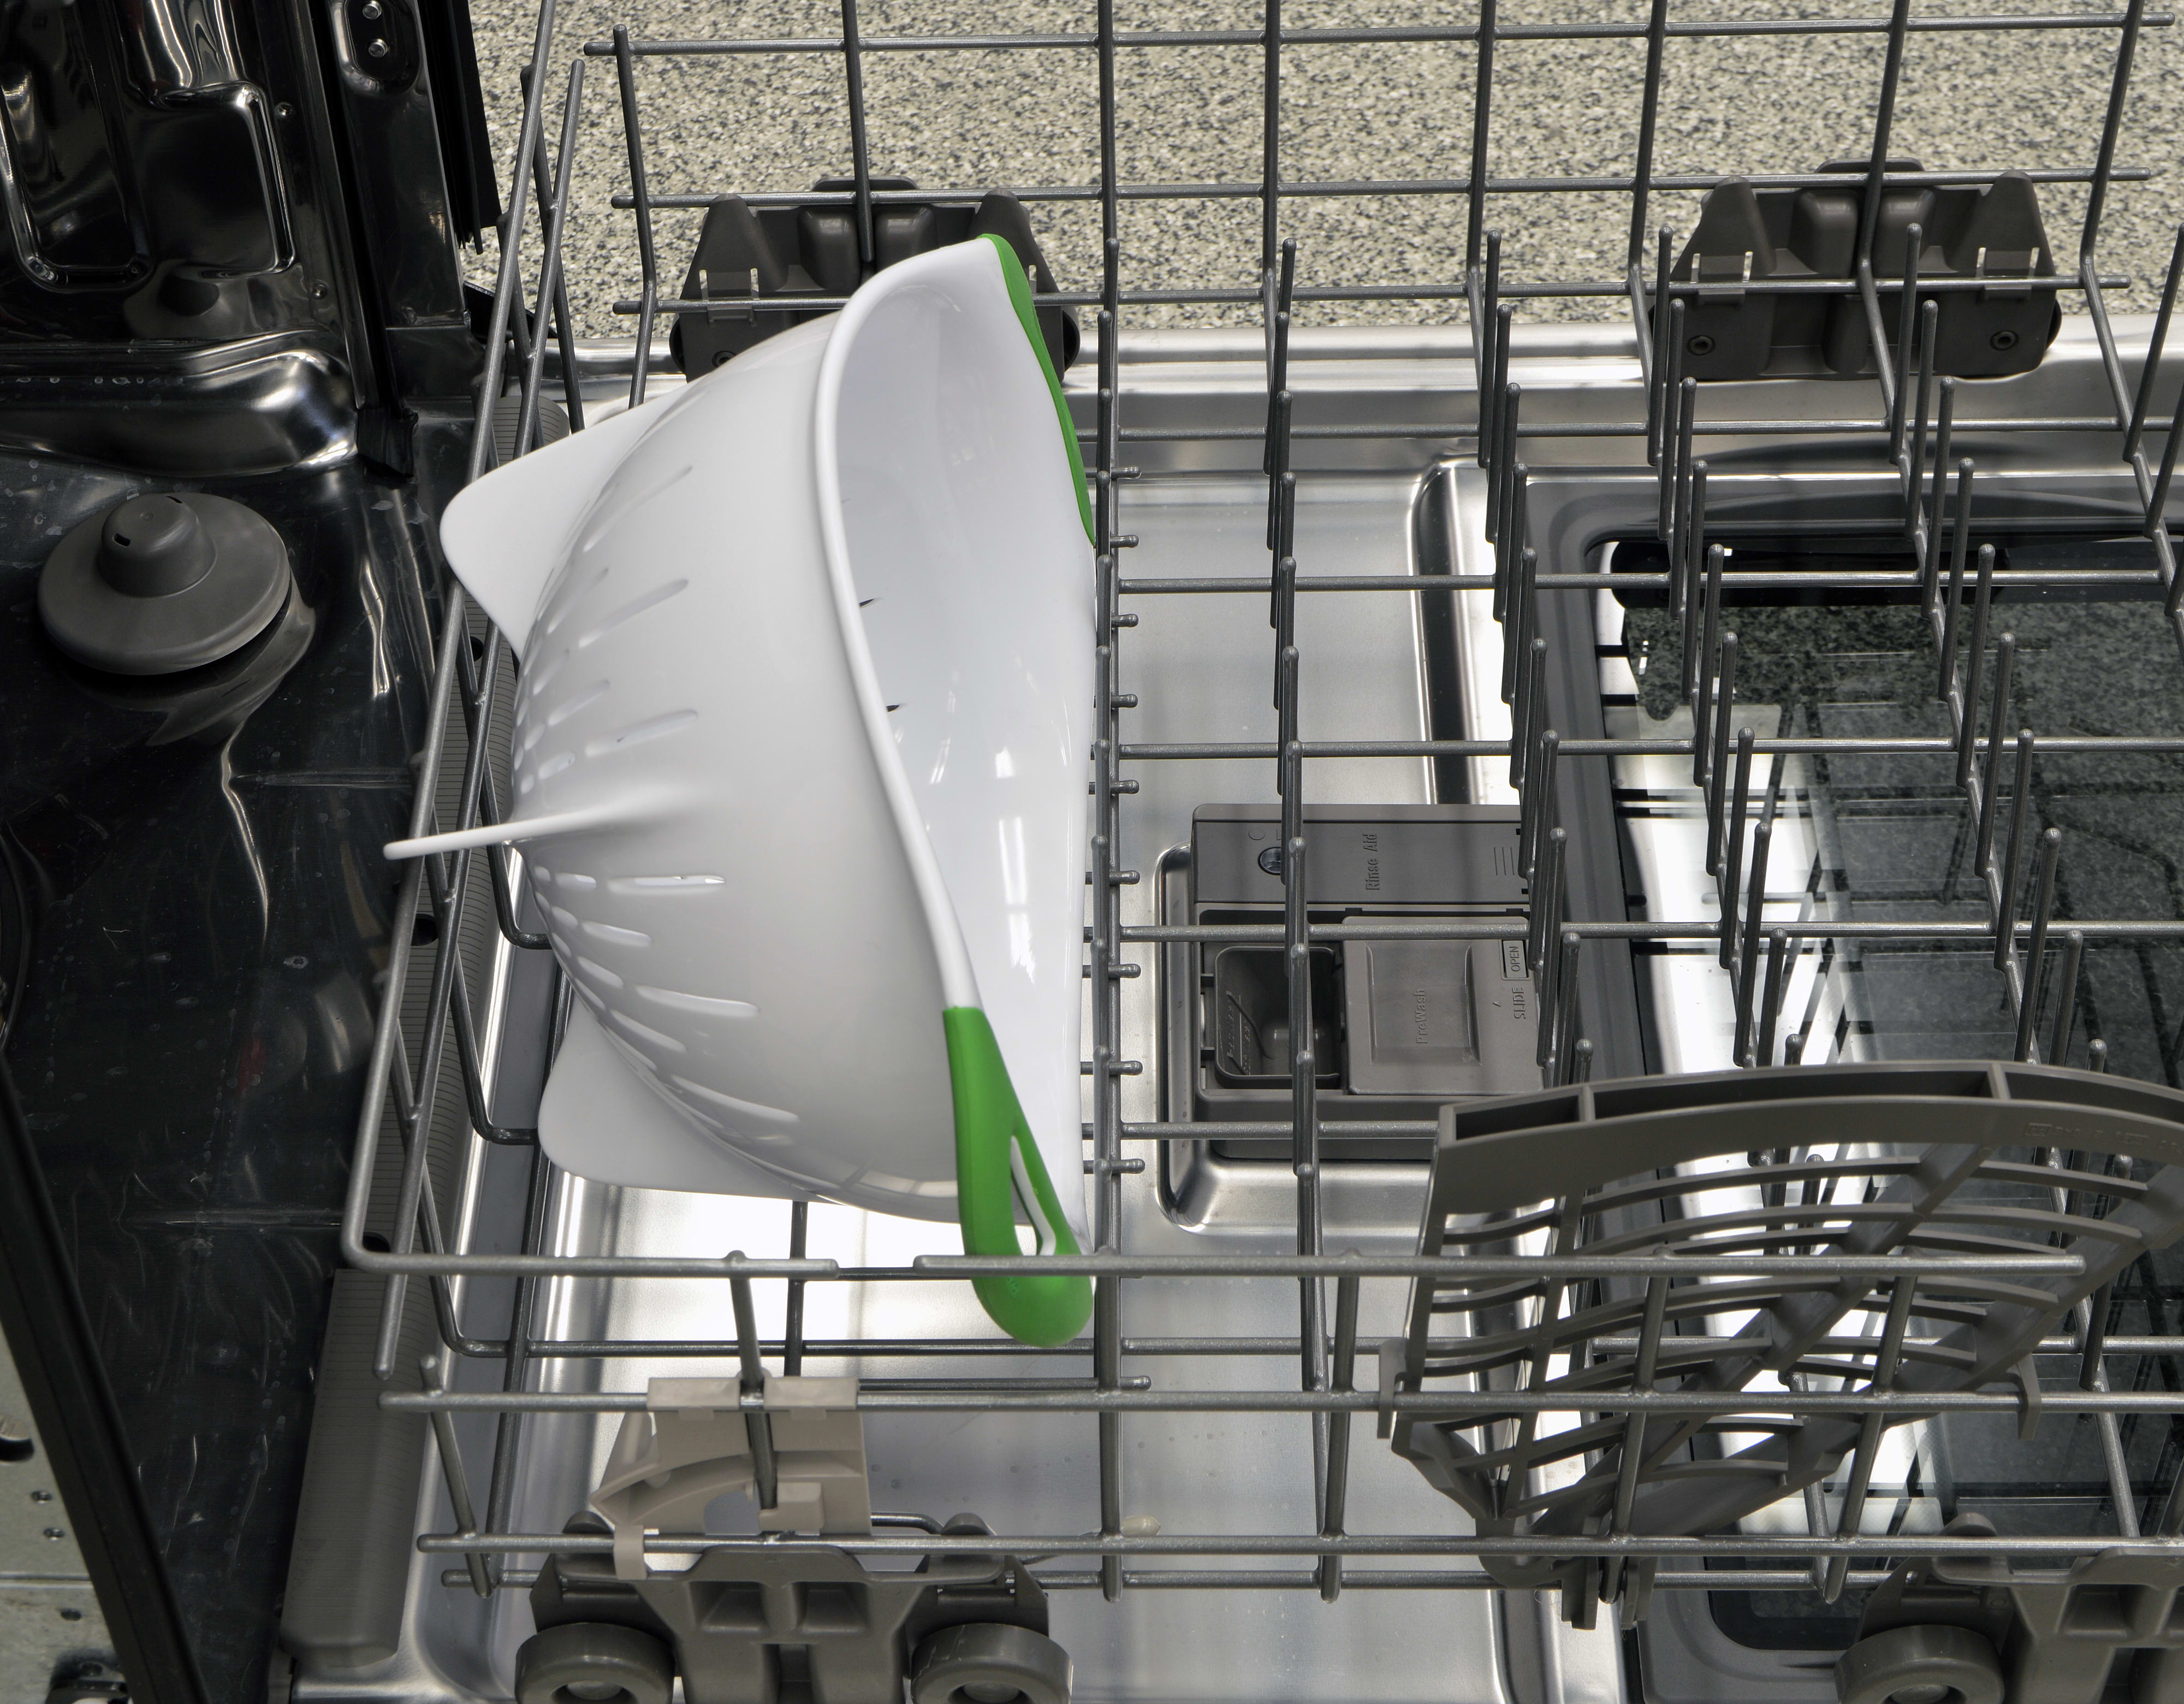 A large colander loaded on the lower rack